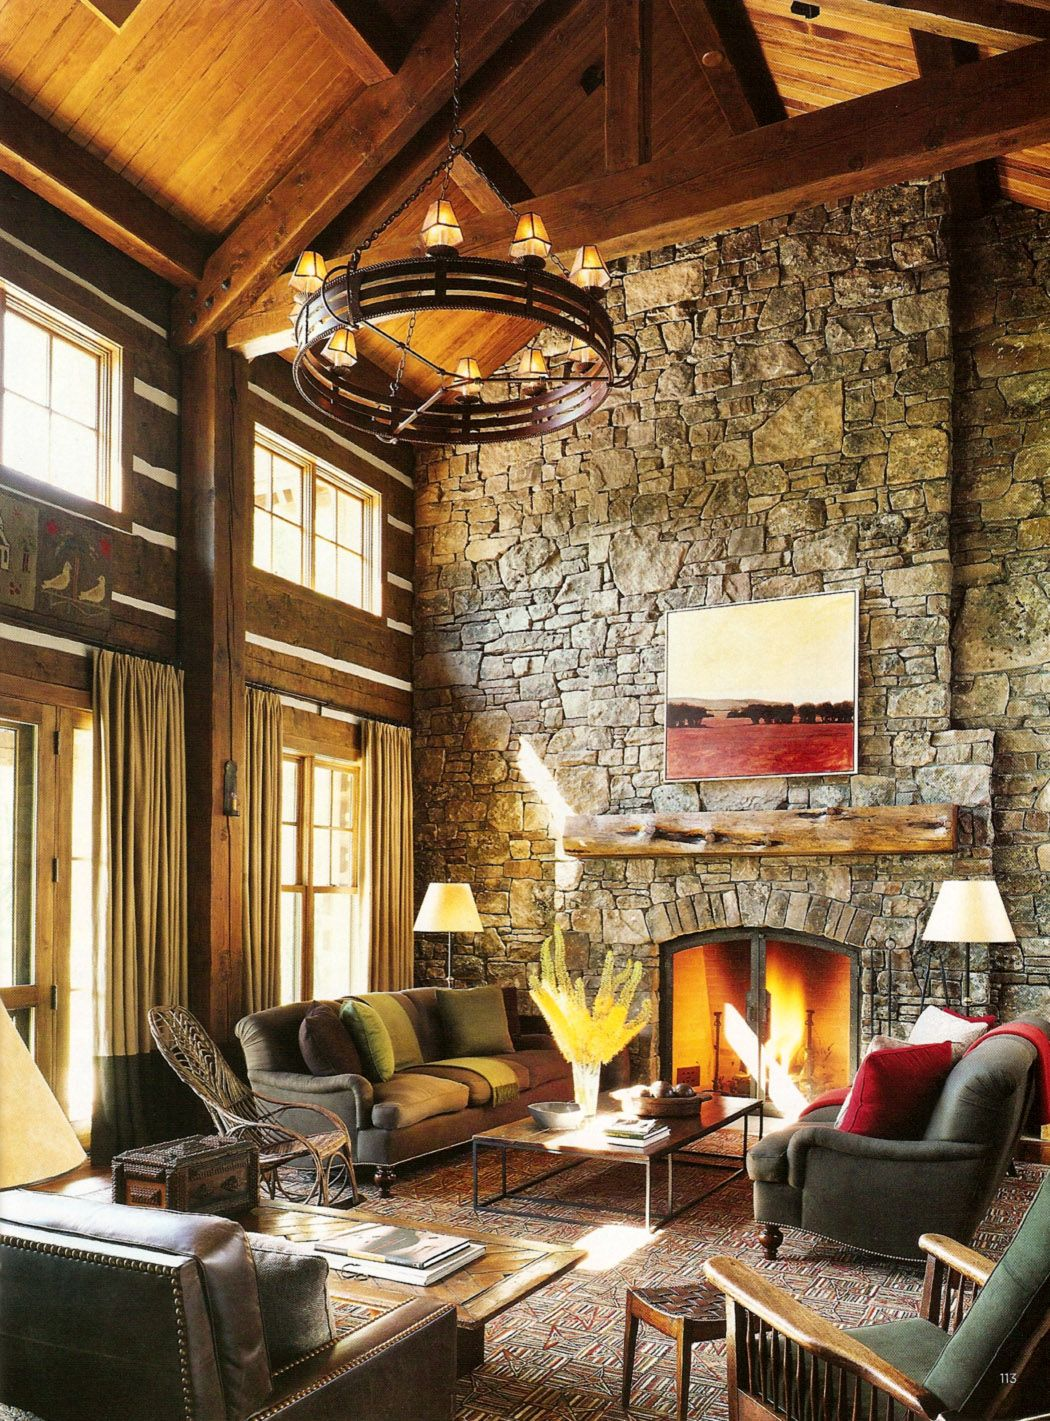 Rustic Mountain Home. Warm & Inviting With A Cozy